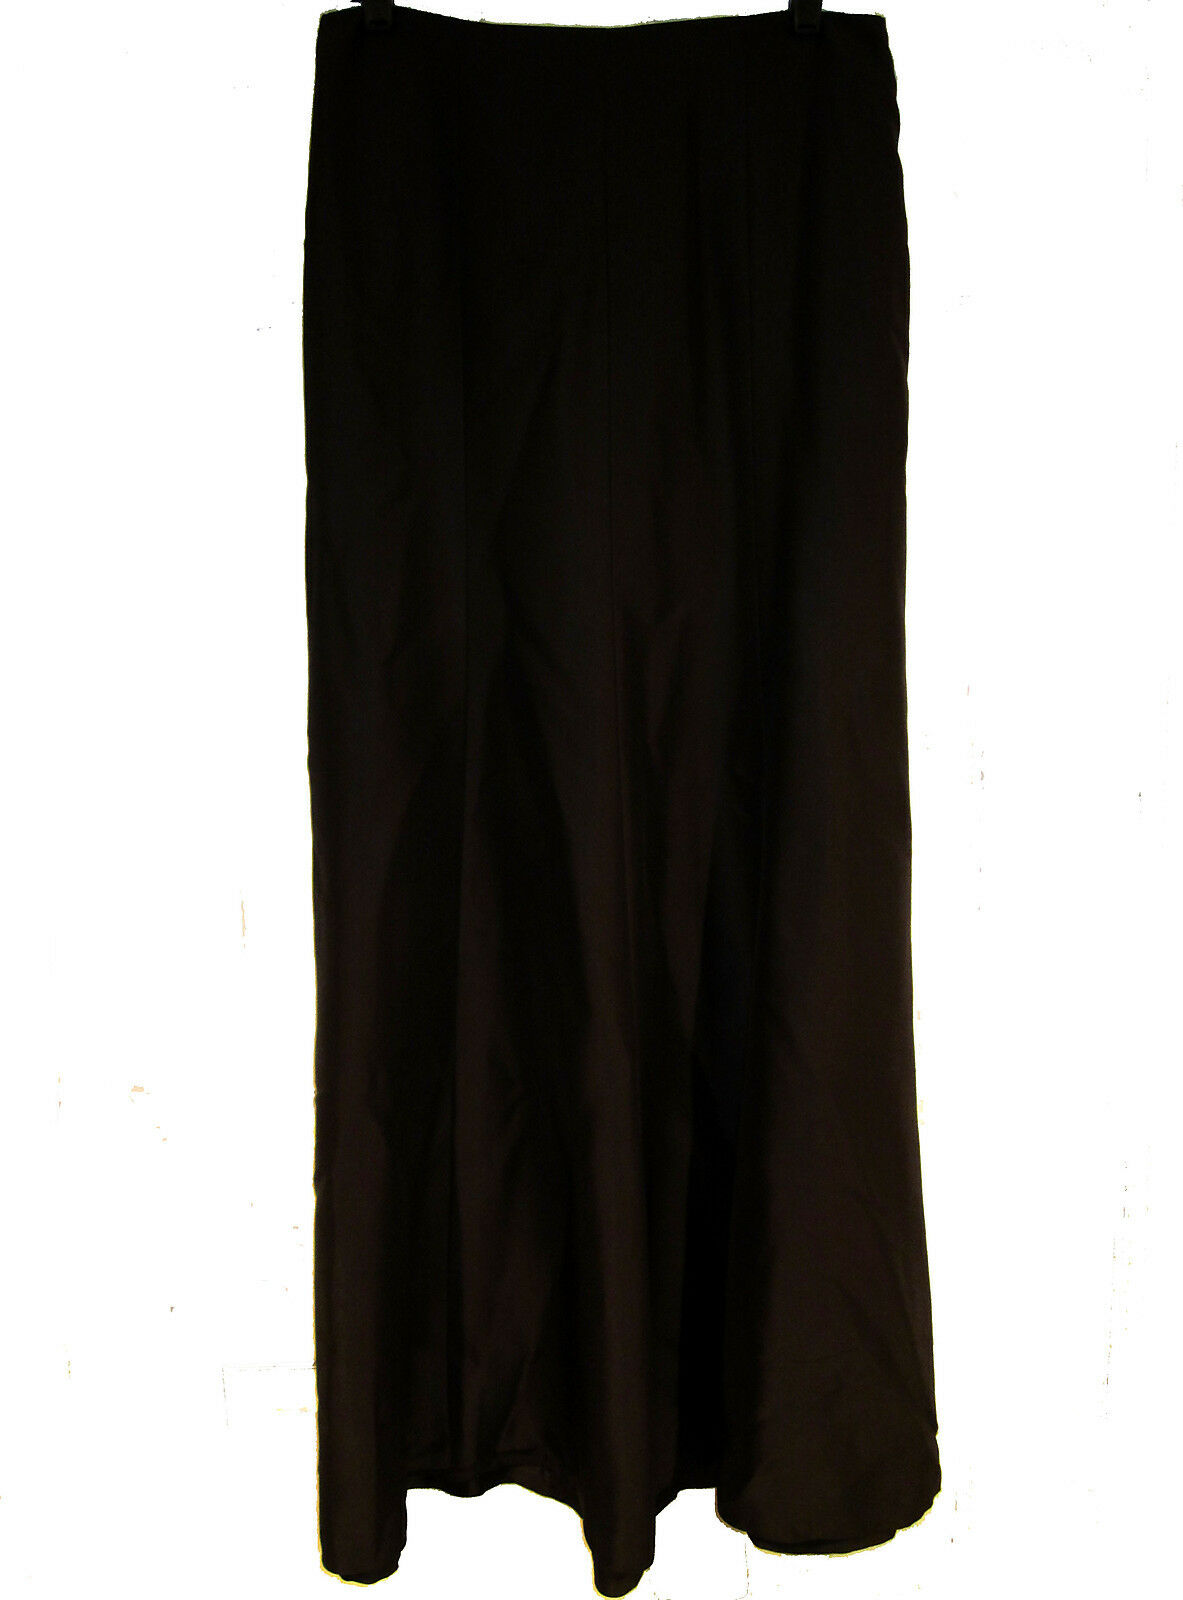 Ann Taylor long brown silk skirt sz 6 maxi formal ball NEW  168